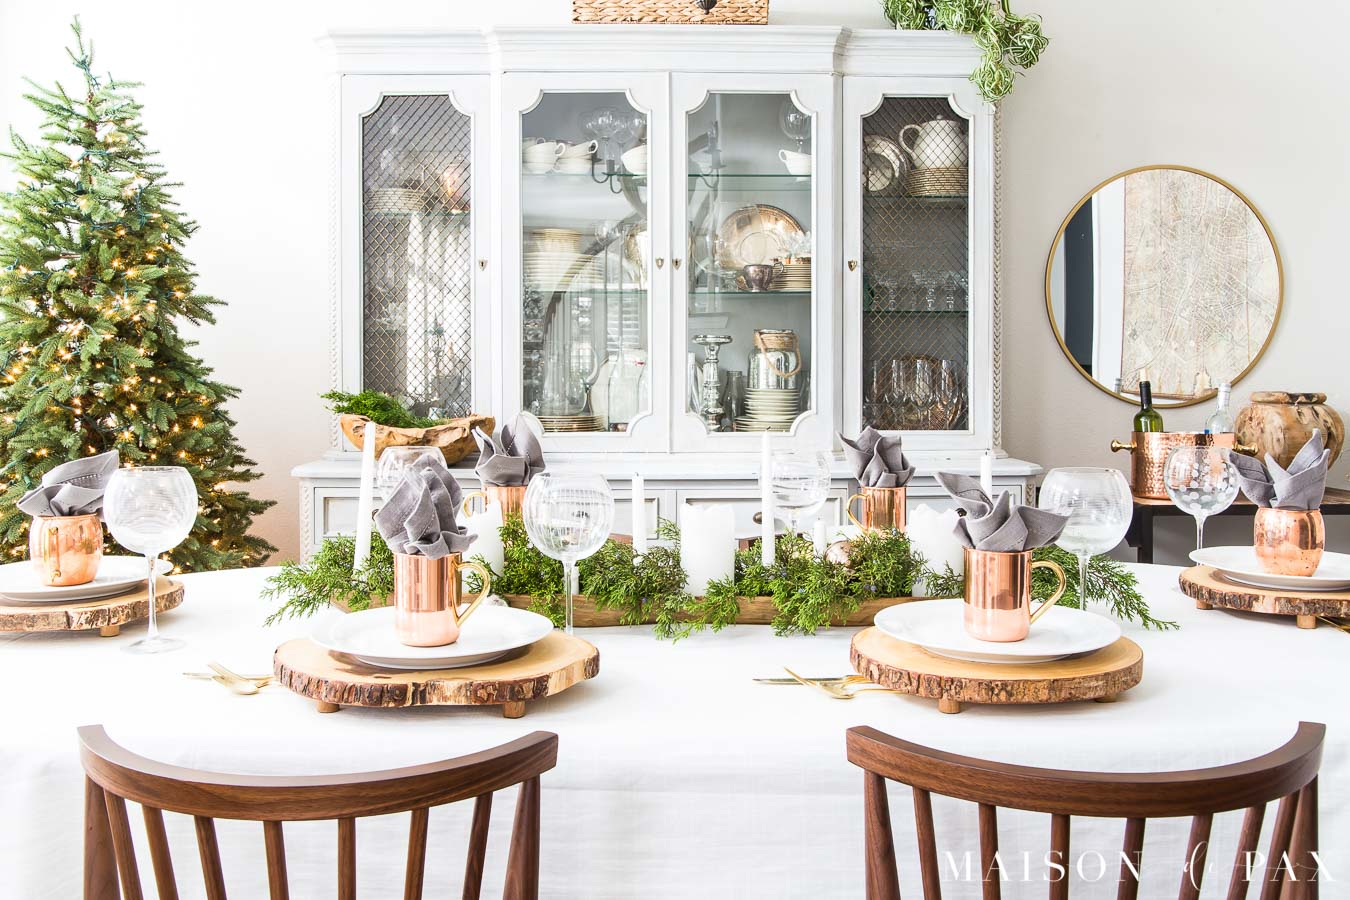 simple wooden chairs in the foreground with a dining table set with white tablecloth and holiday greenery lay beyond